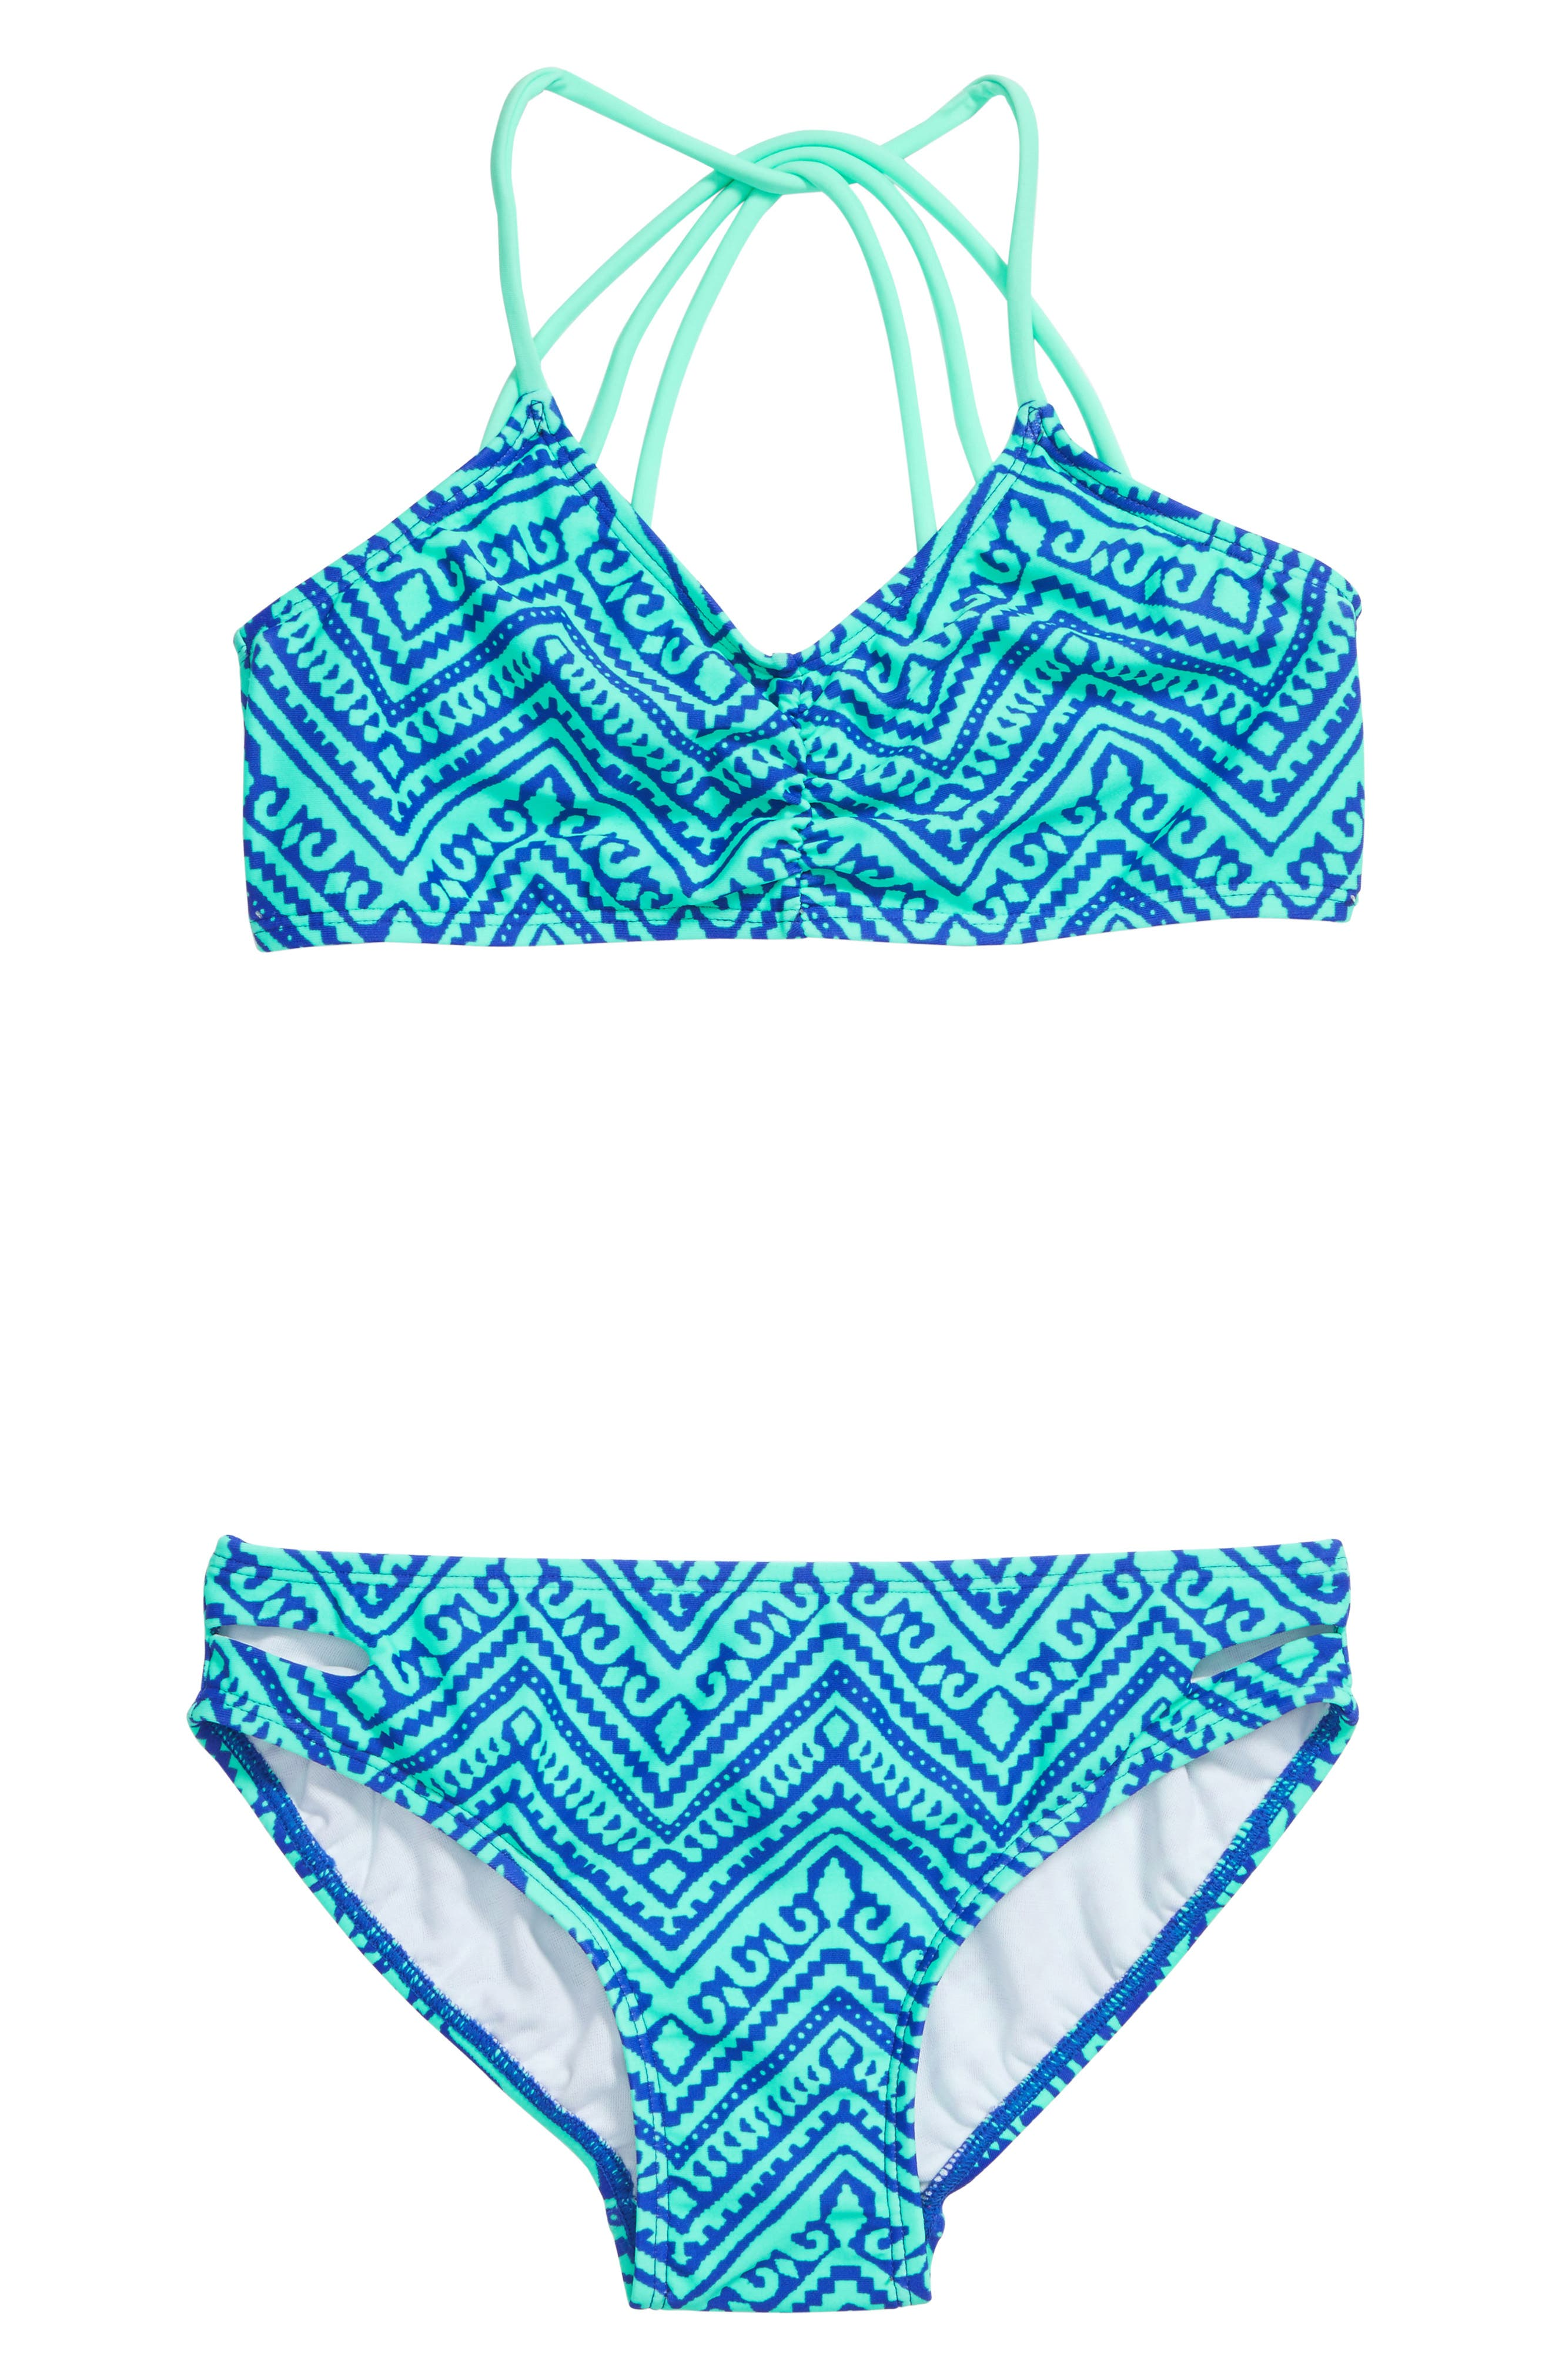 'Zig & Zag' Geo Print Two-Piece Swimsuit,                             Main thumbnail 1, color,                             330